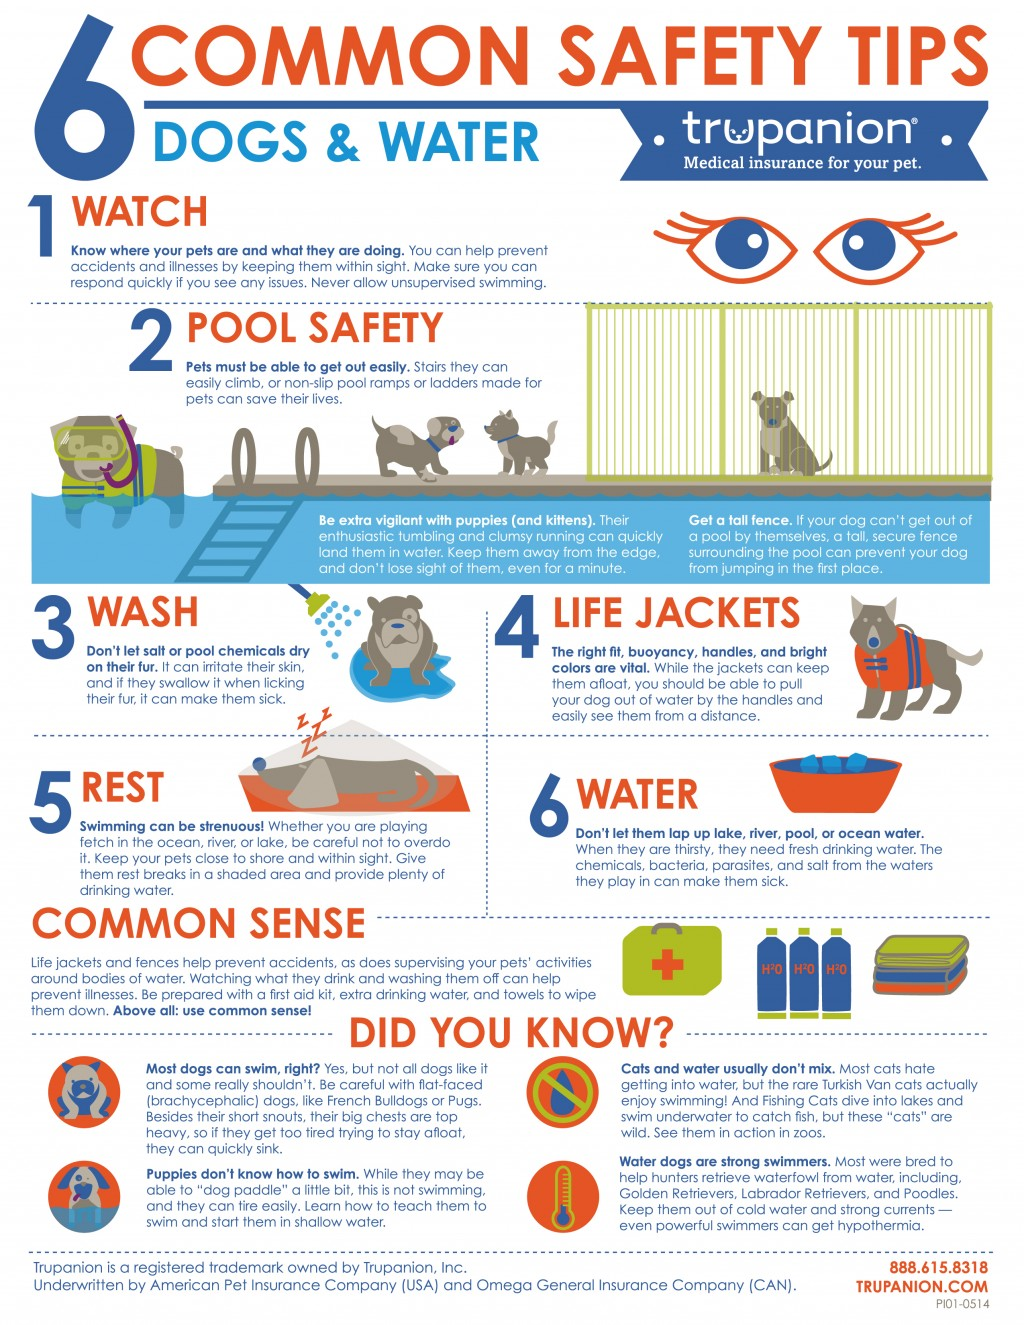 After Fire... Water Safety Tips & Information For Pooches